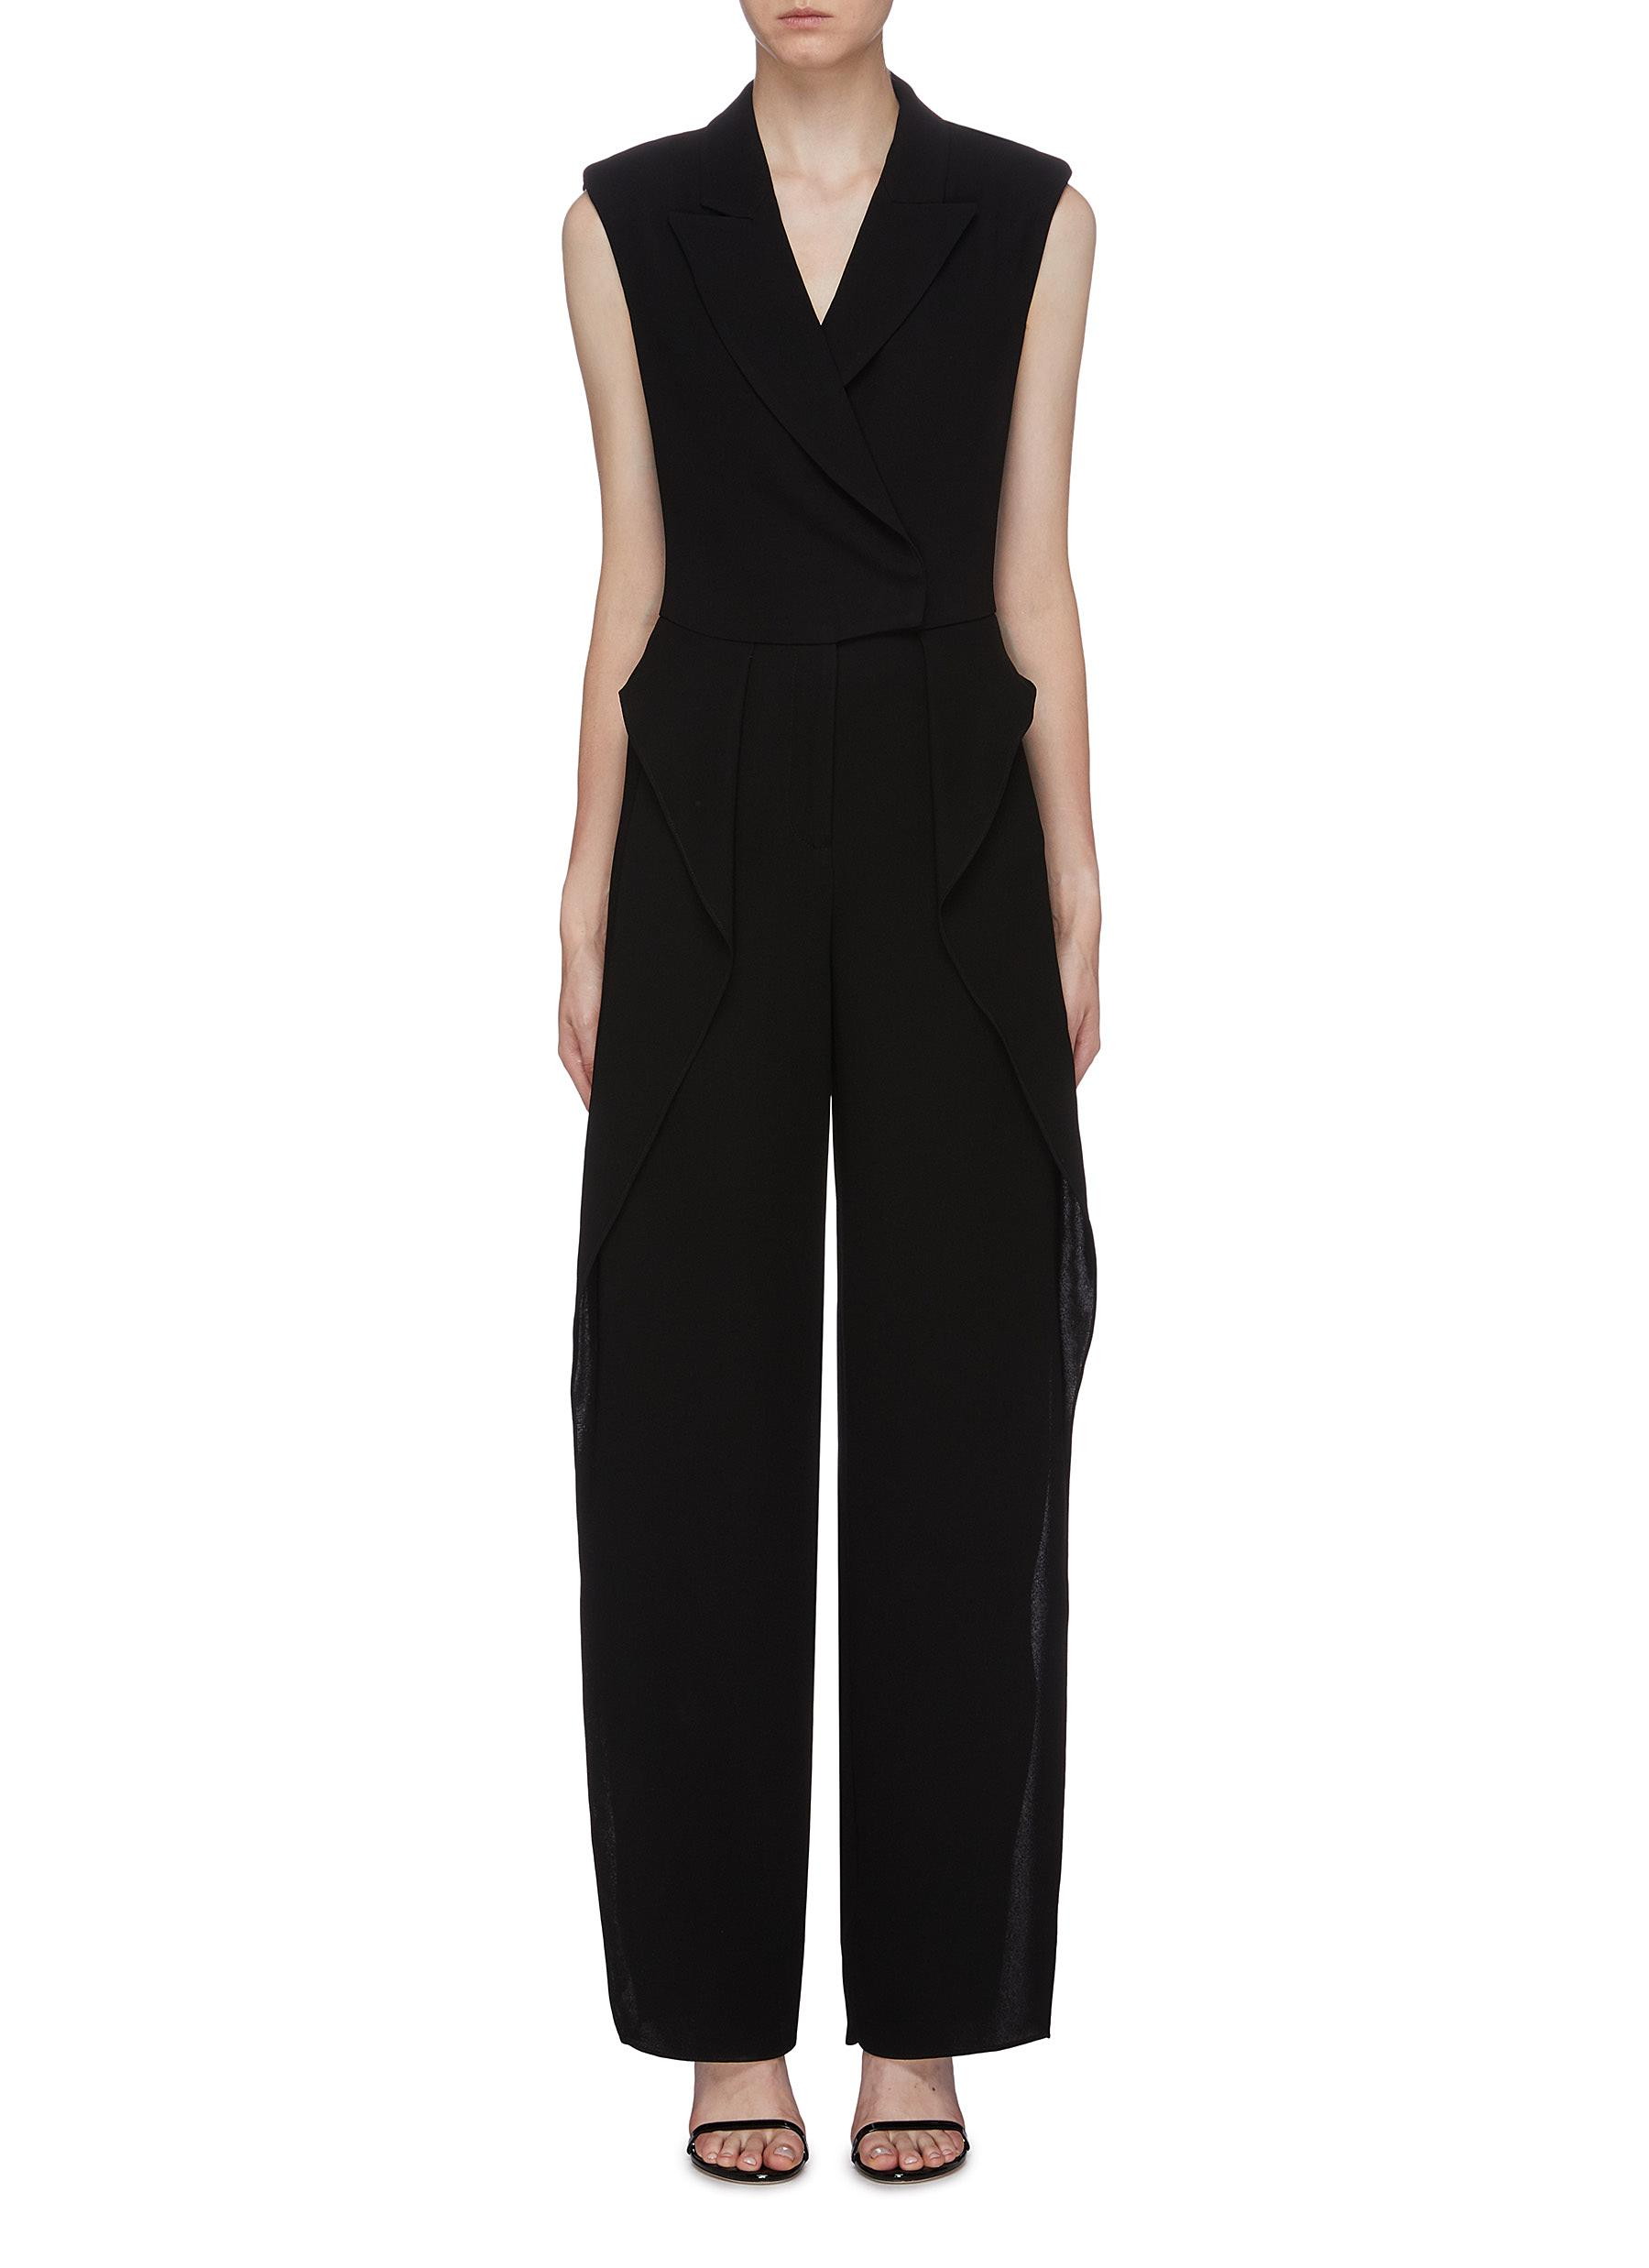 Ruffle side crepe sleeveless blazer jumpsuit by Bianca Spender